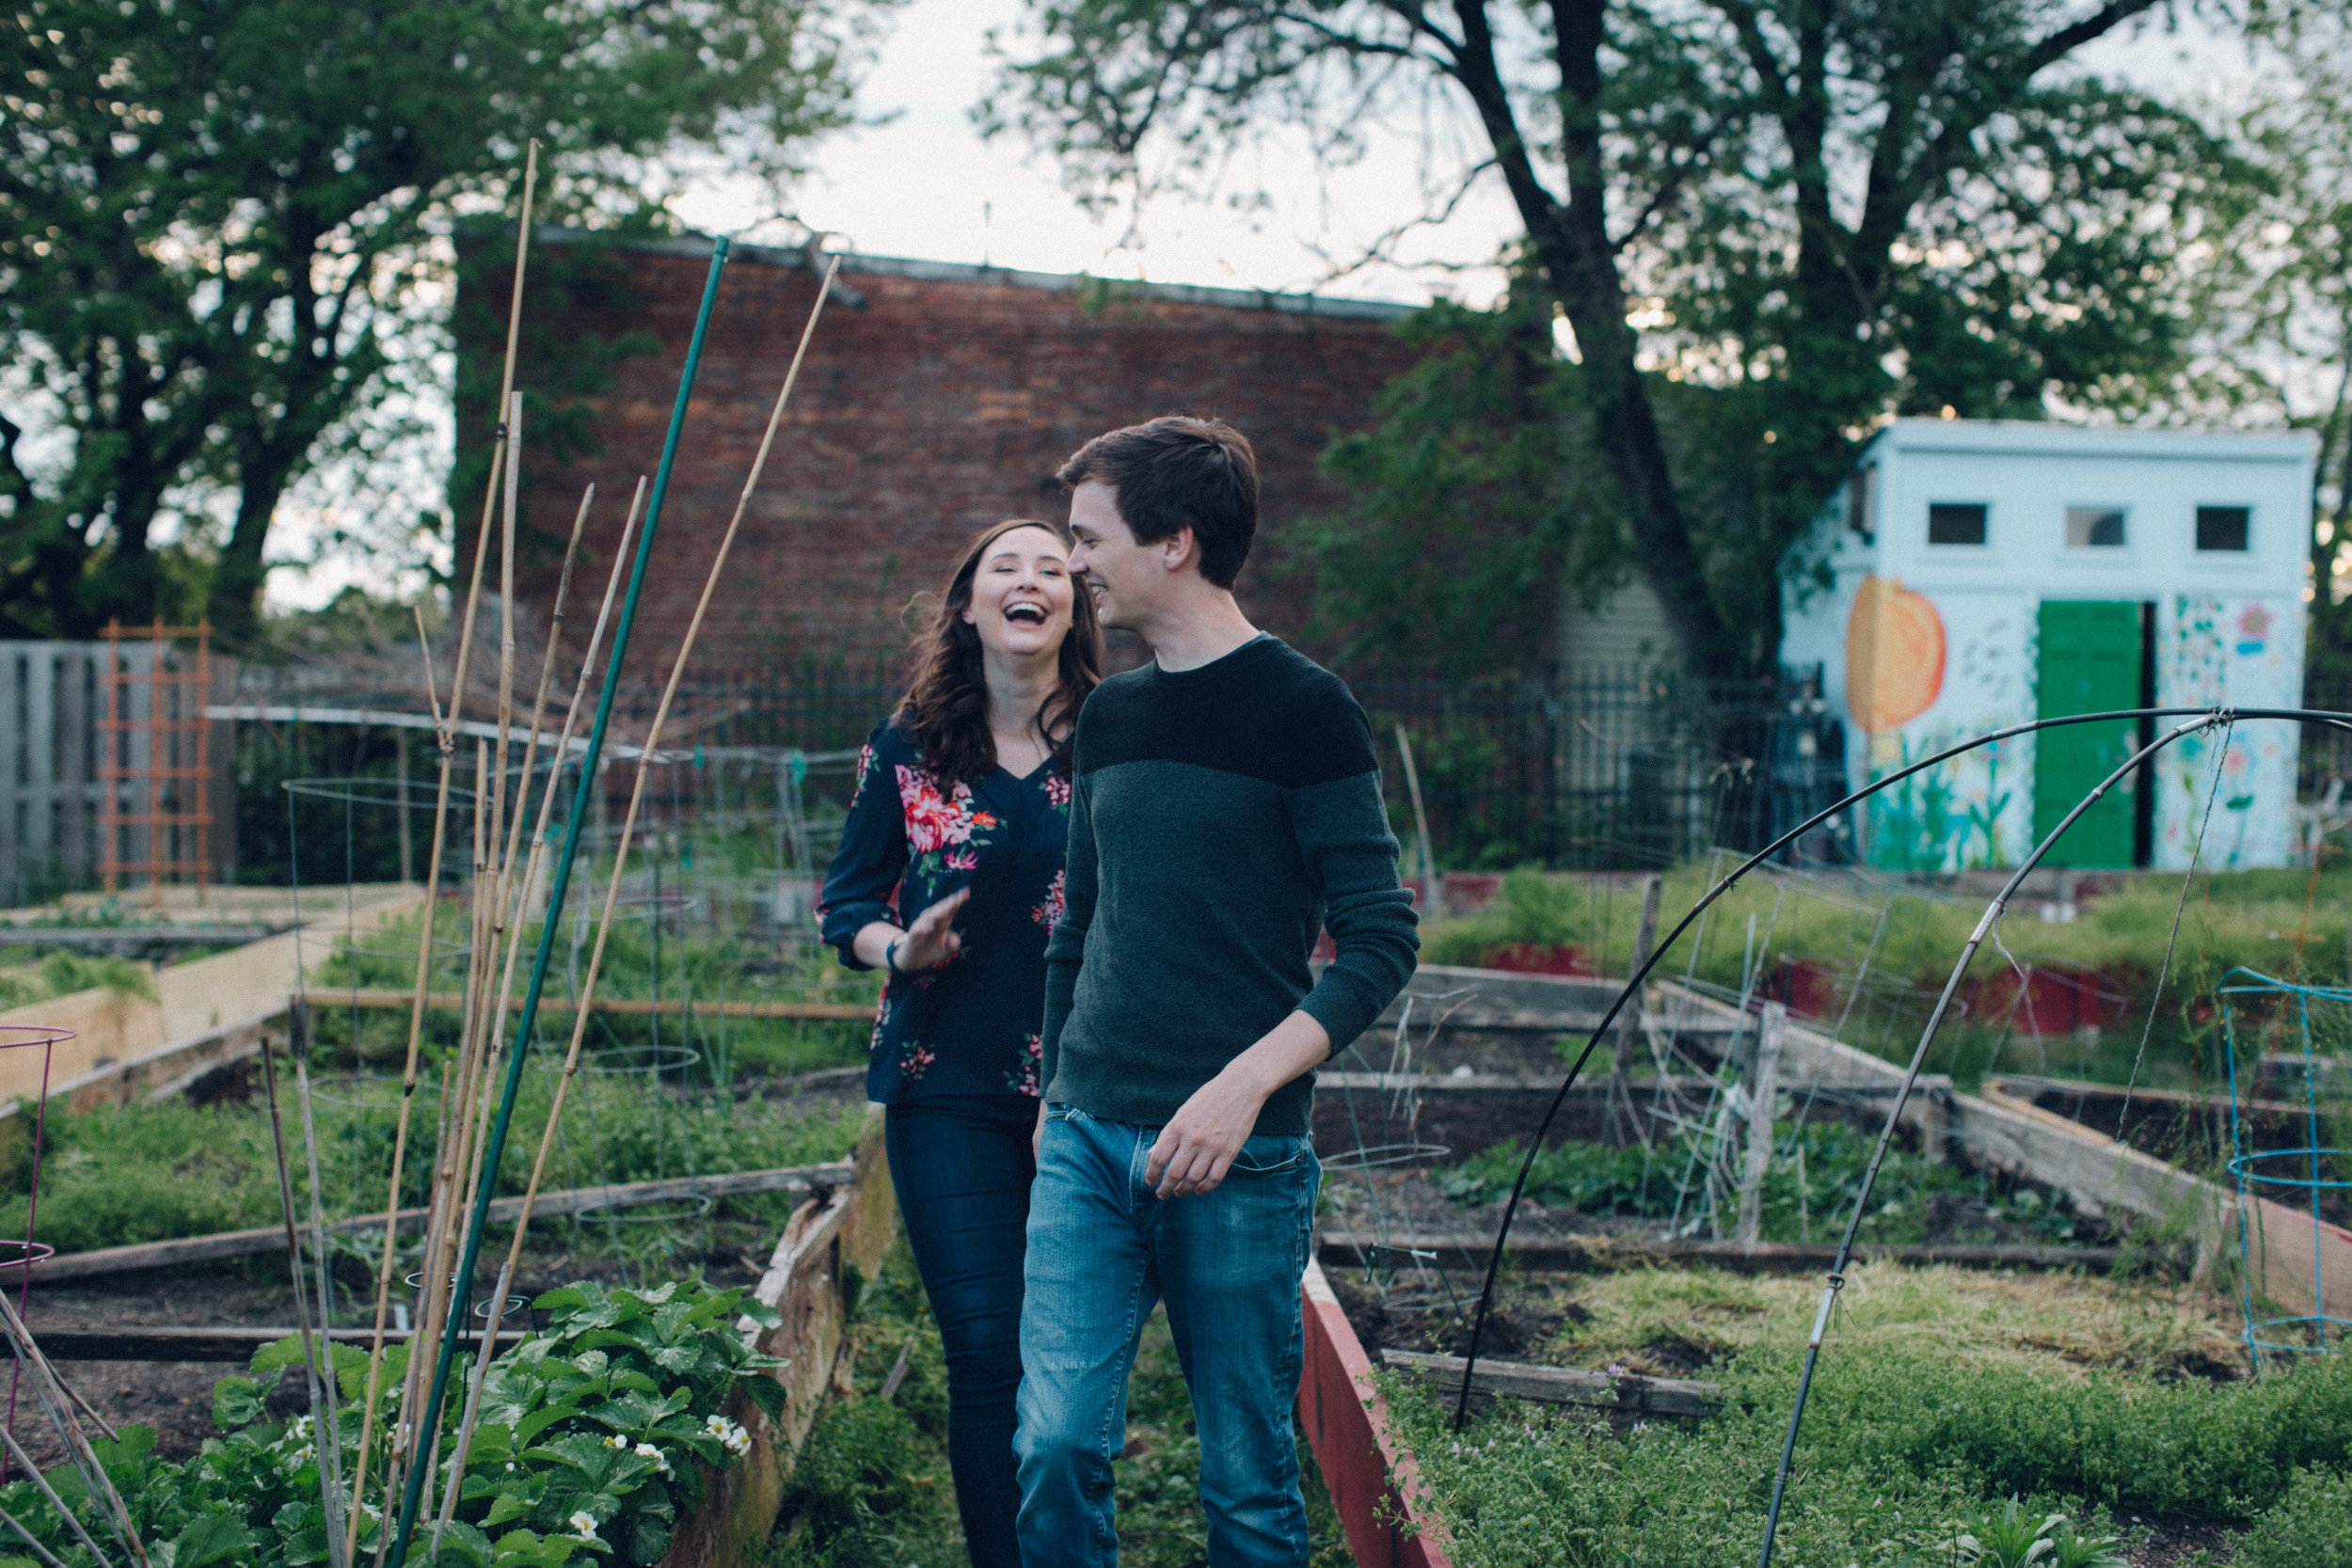 Engagement session in a community garden